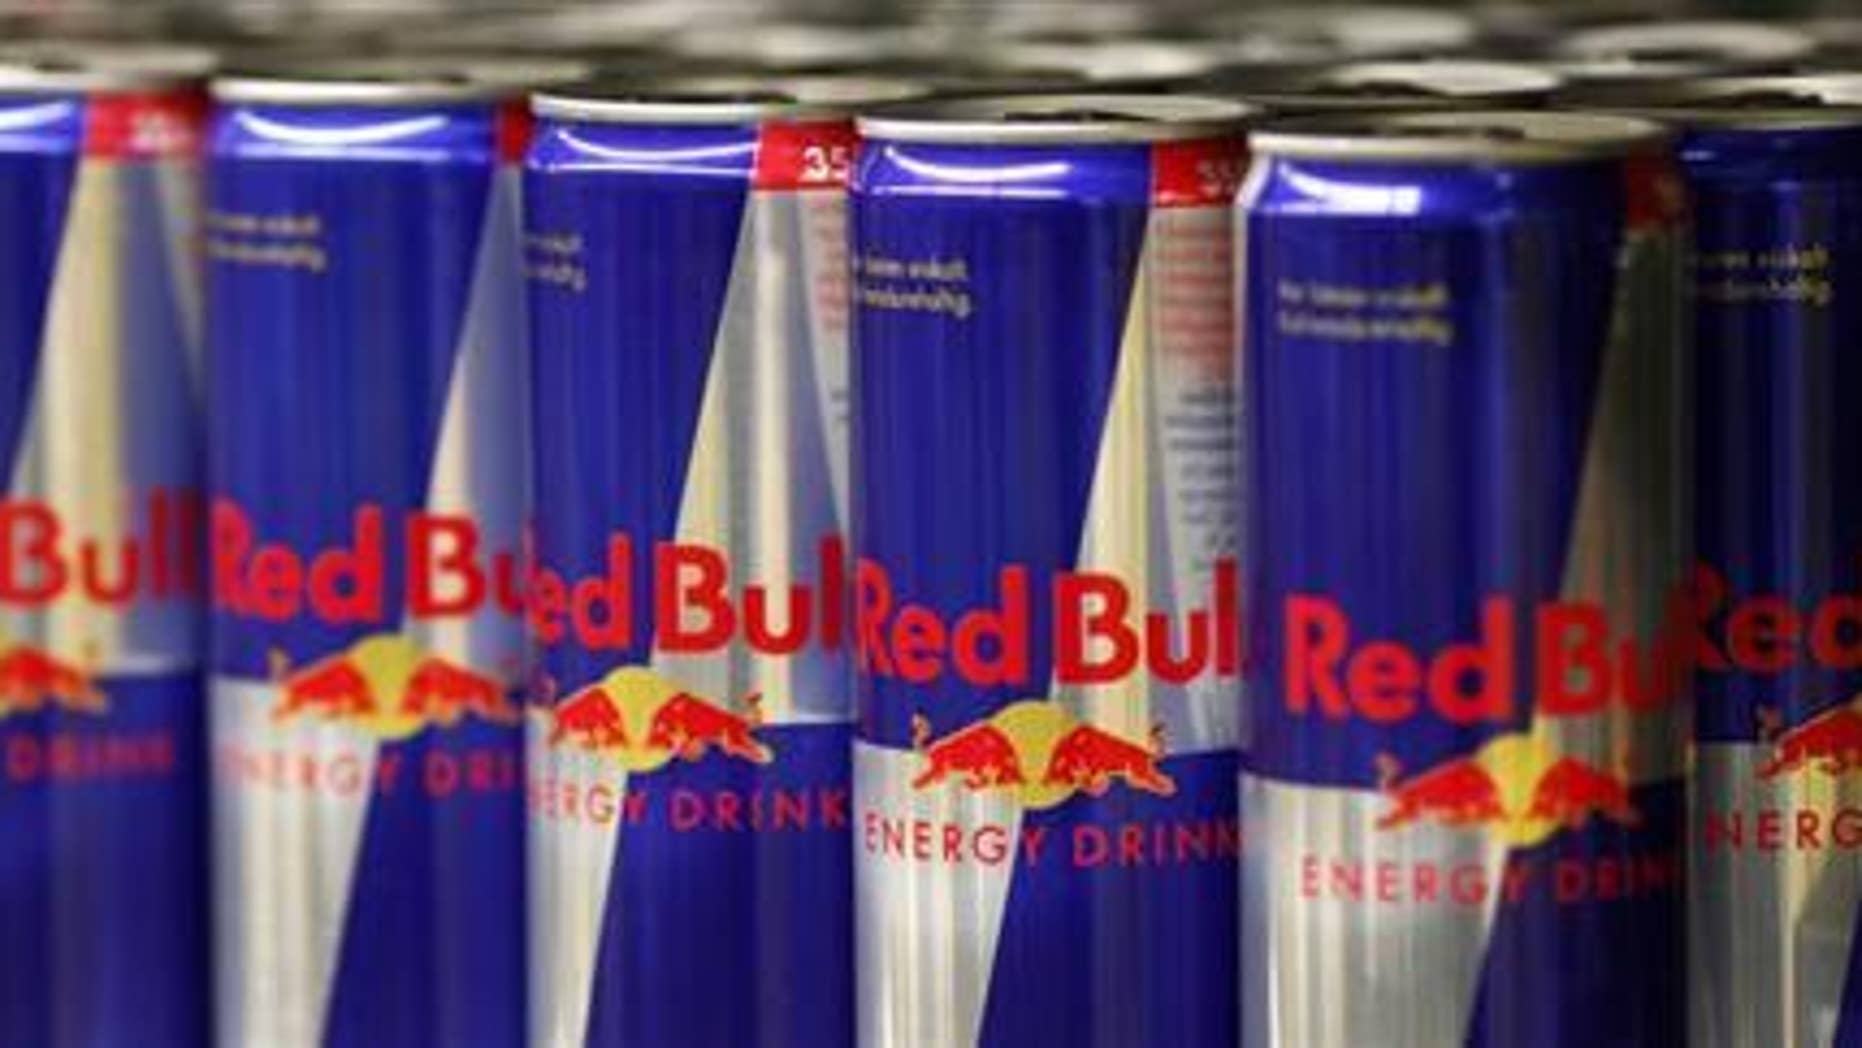 Red Bull recently settled a $13 million lawsuit.